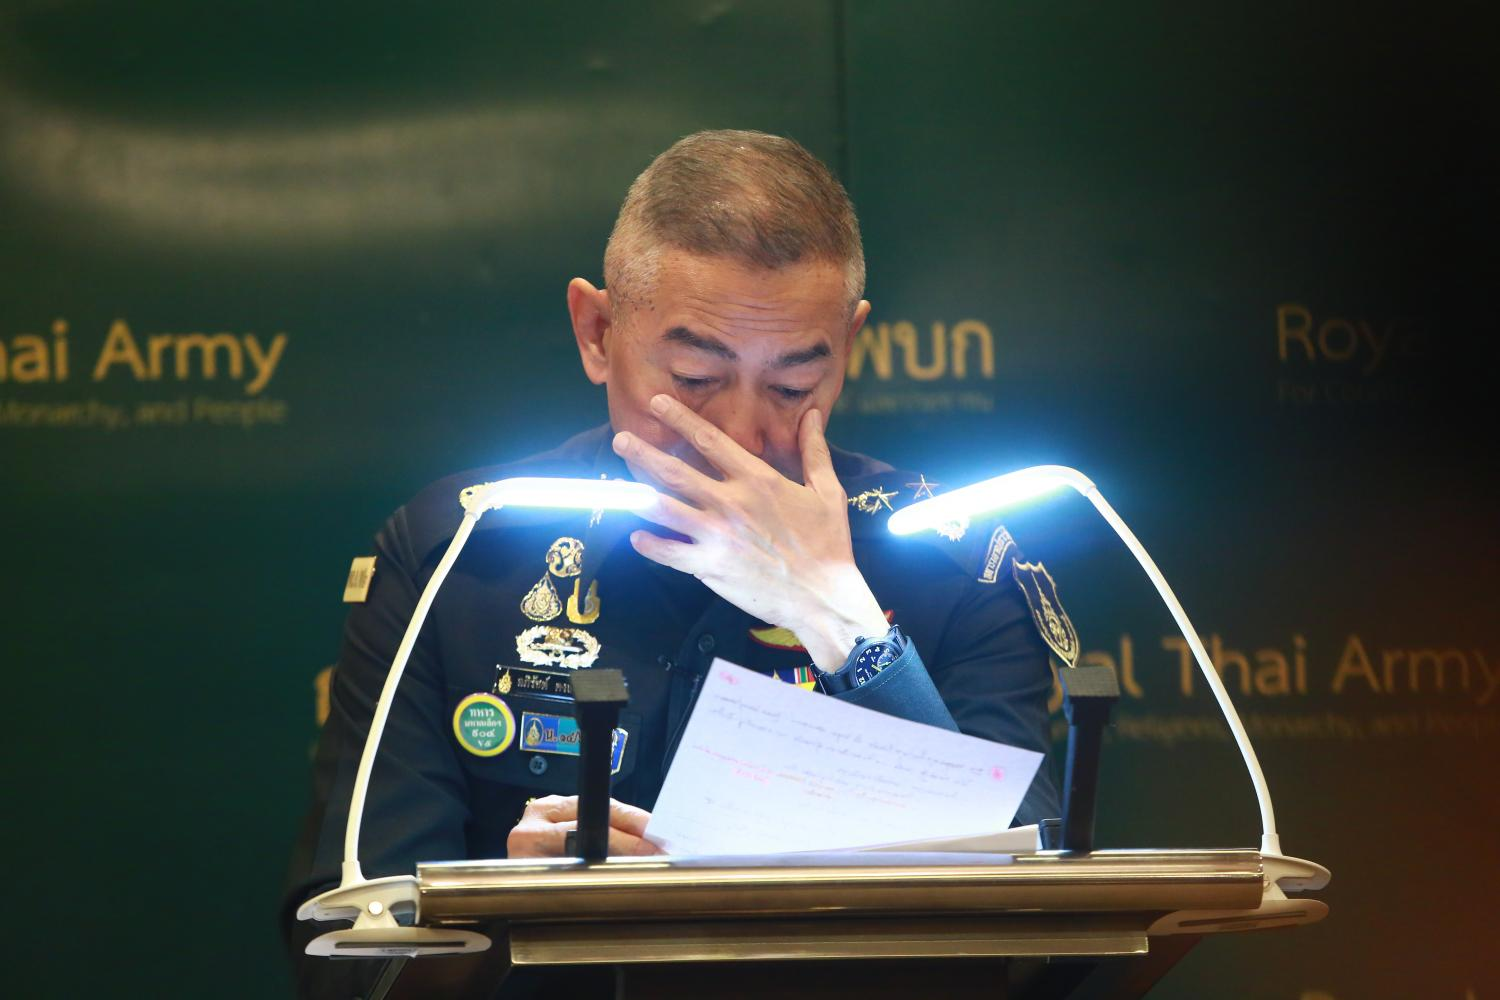 Army chief Gen Apirat Kongsompong weeps as he apologises for the mass shooting in Nakhon Ratchasima, during a media briefing at Royal Thai Army headquarters on Tuesday. Somchai Poomlard